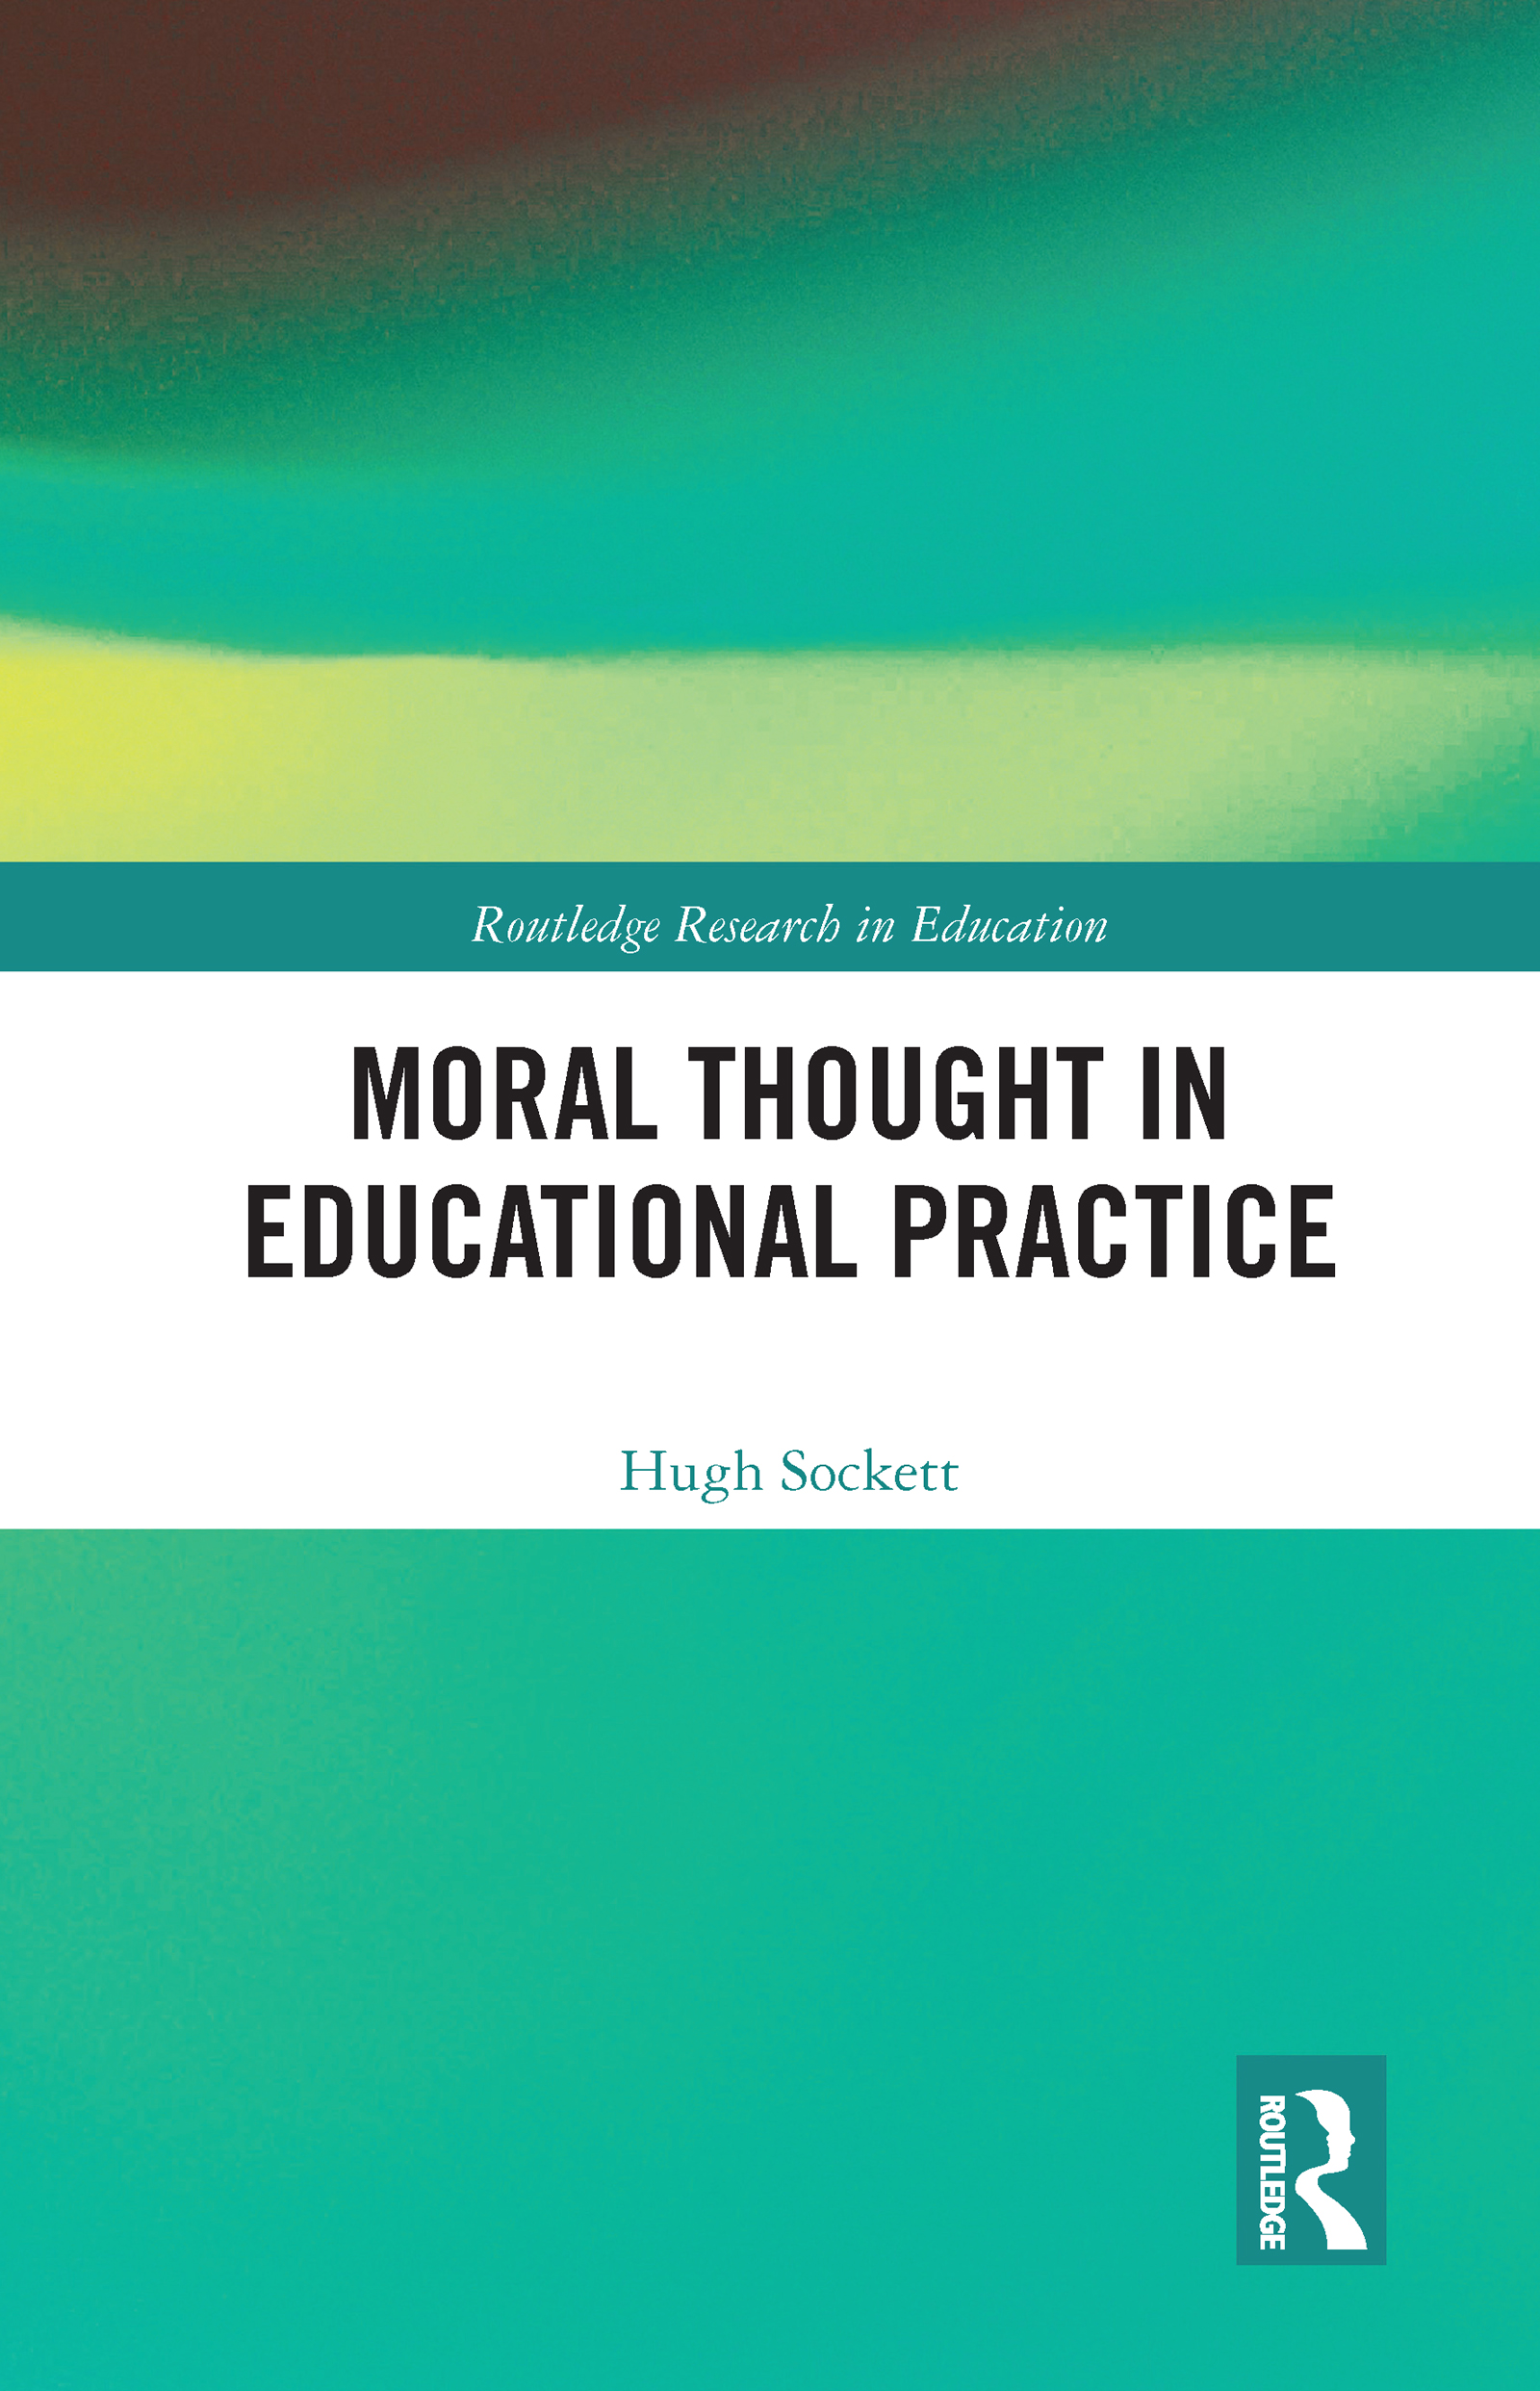 Moral Thought in Educational Practice